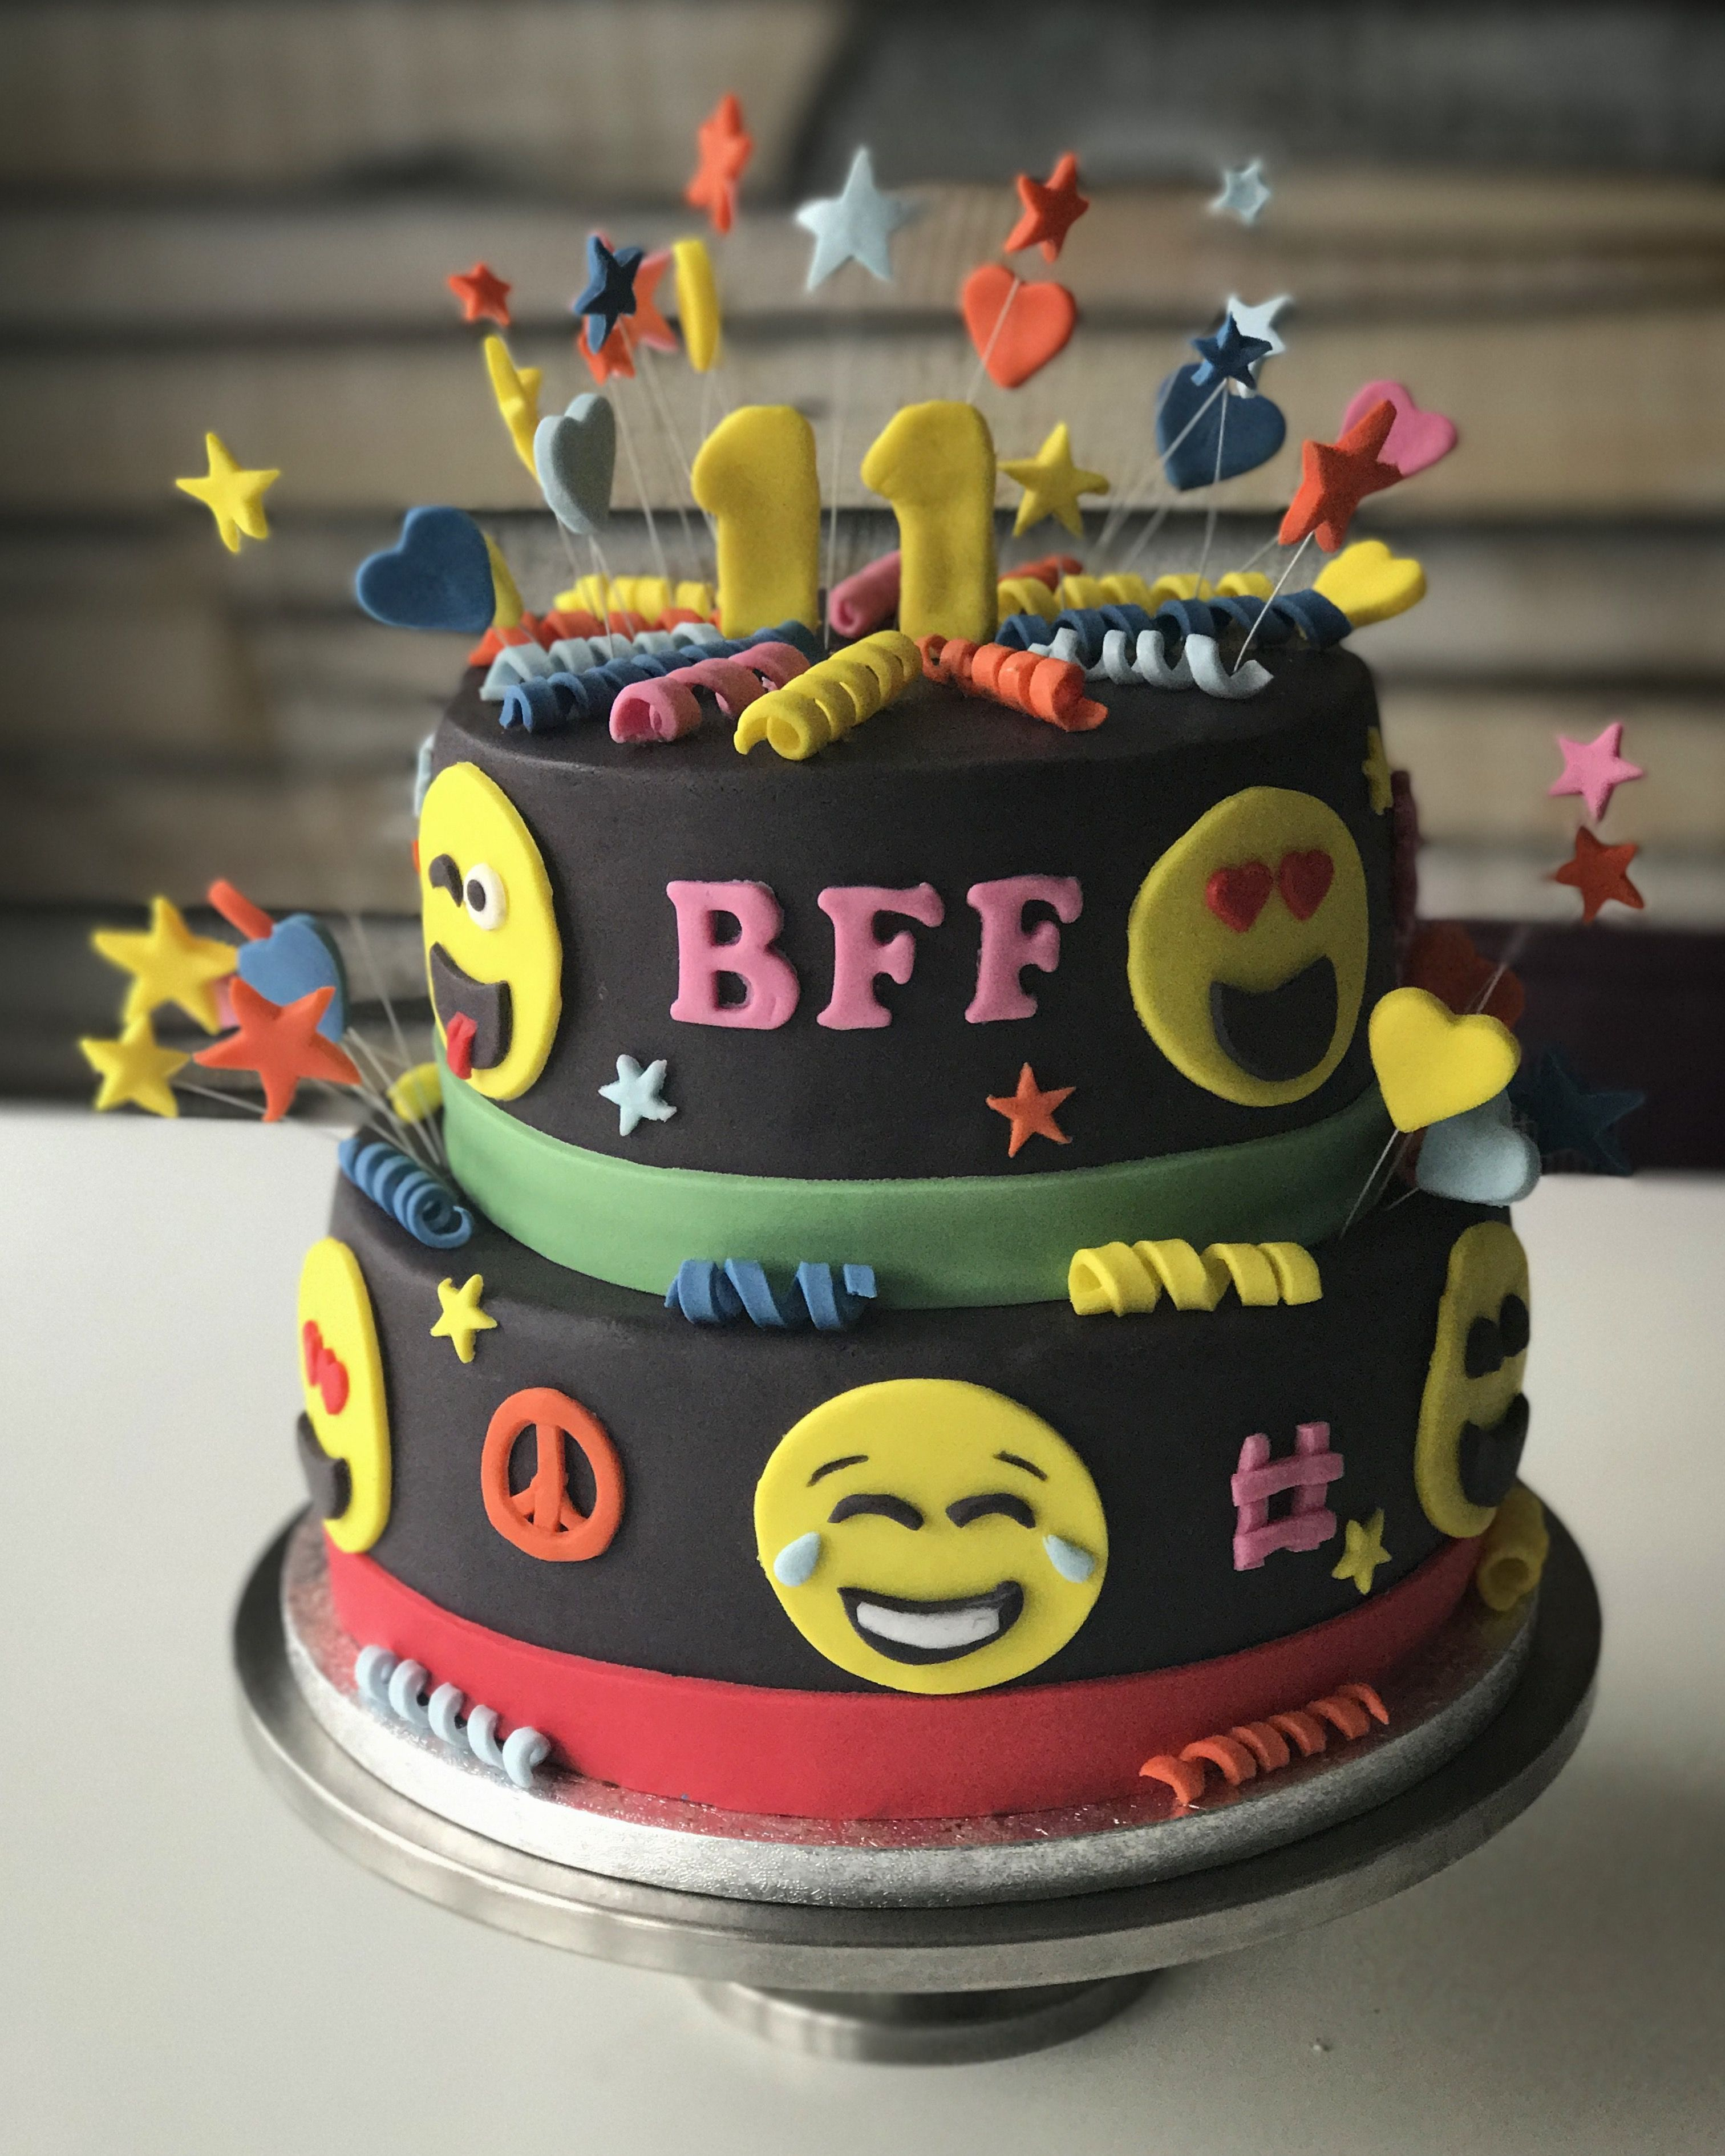 Birthday smiley cake for my 11 year old girl Marit!